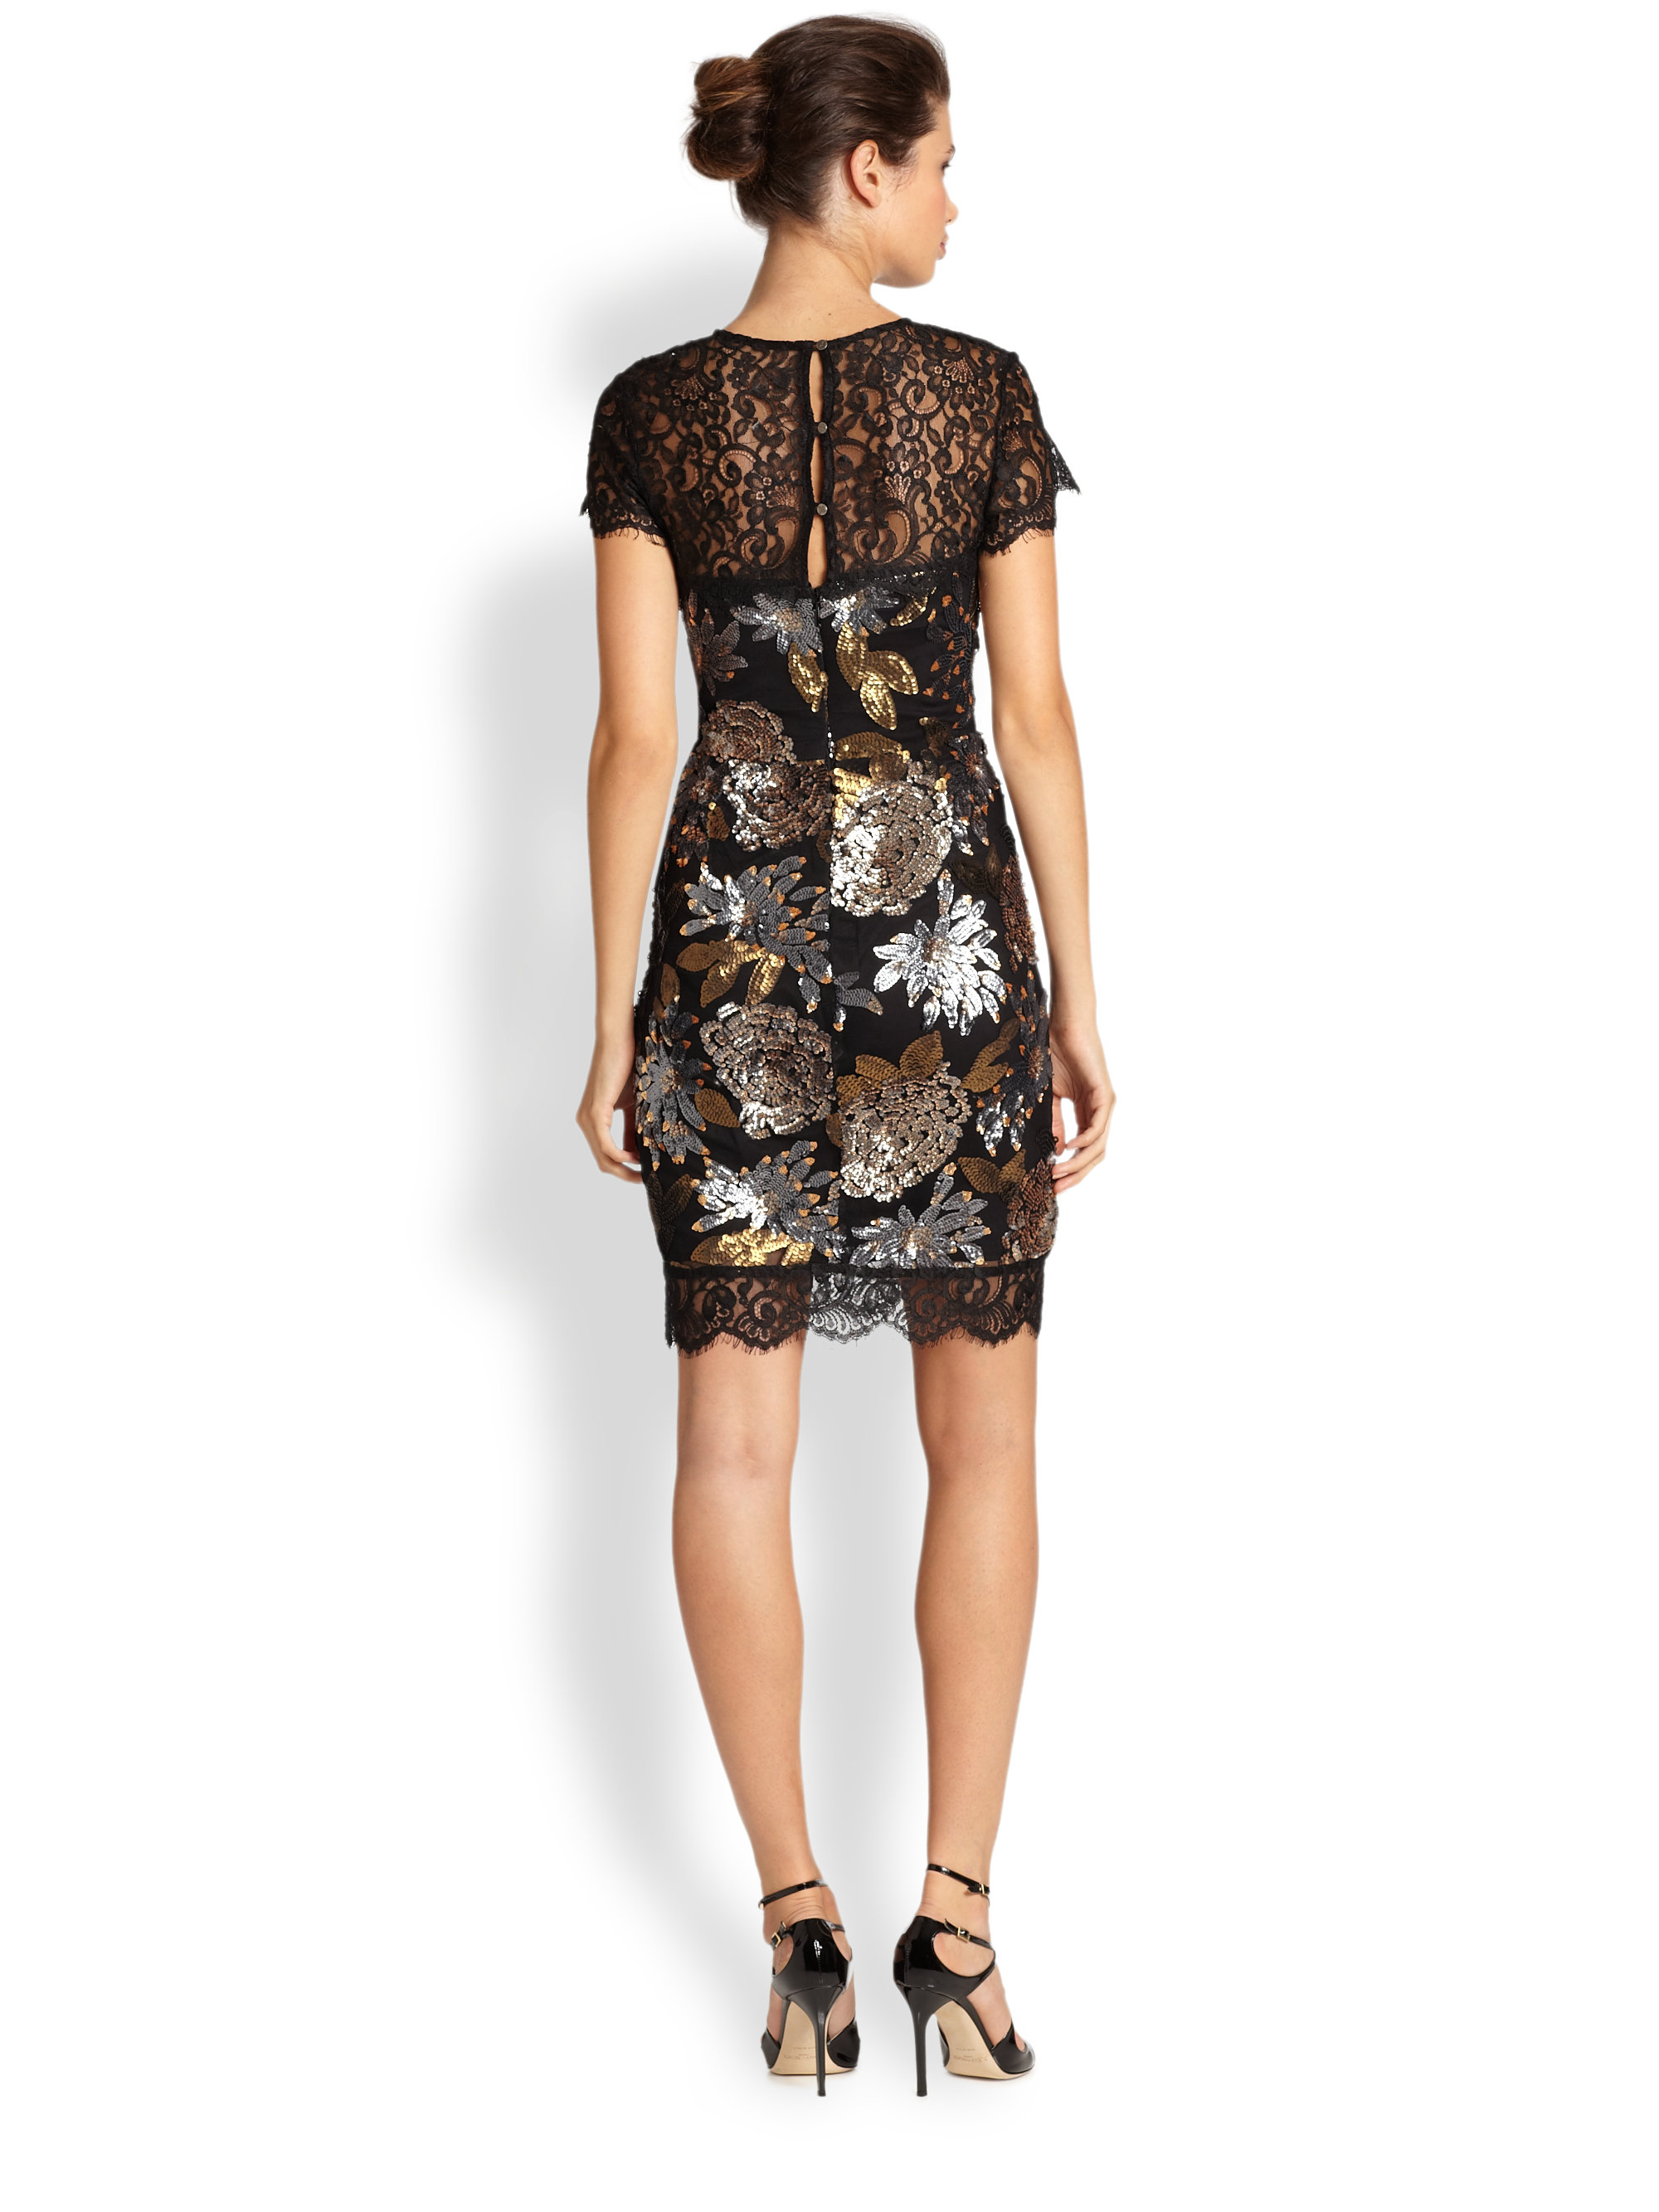 Lyst Nicole Miller Floral Sequin Cocktail Dress In Black